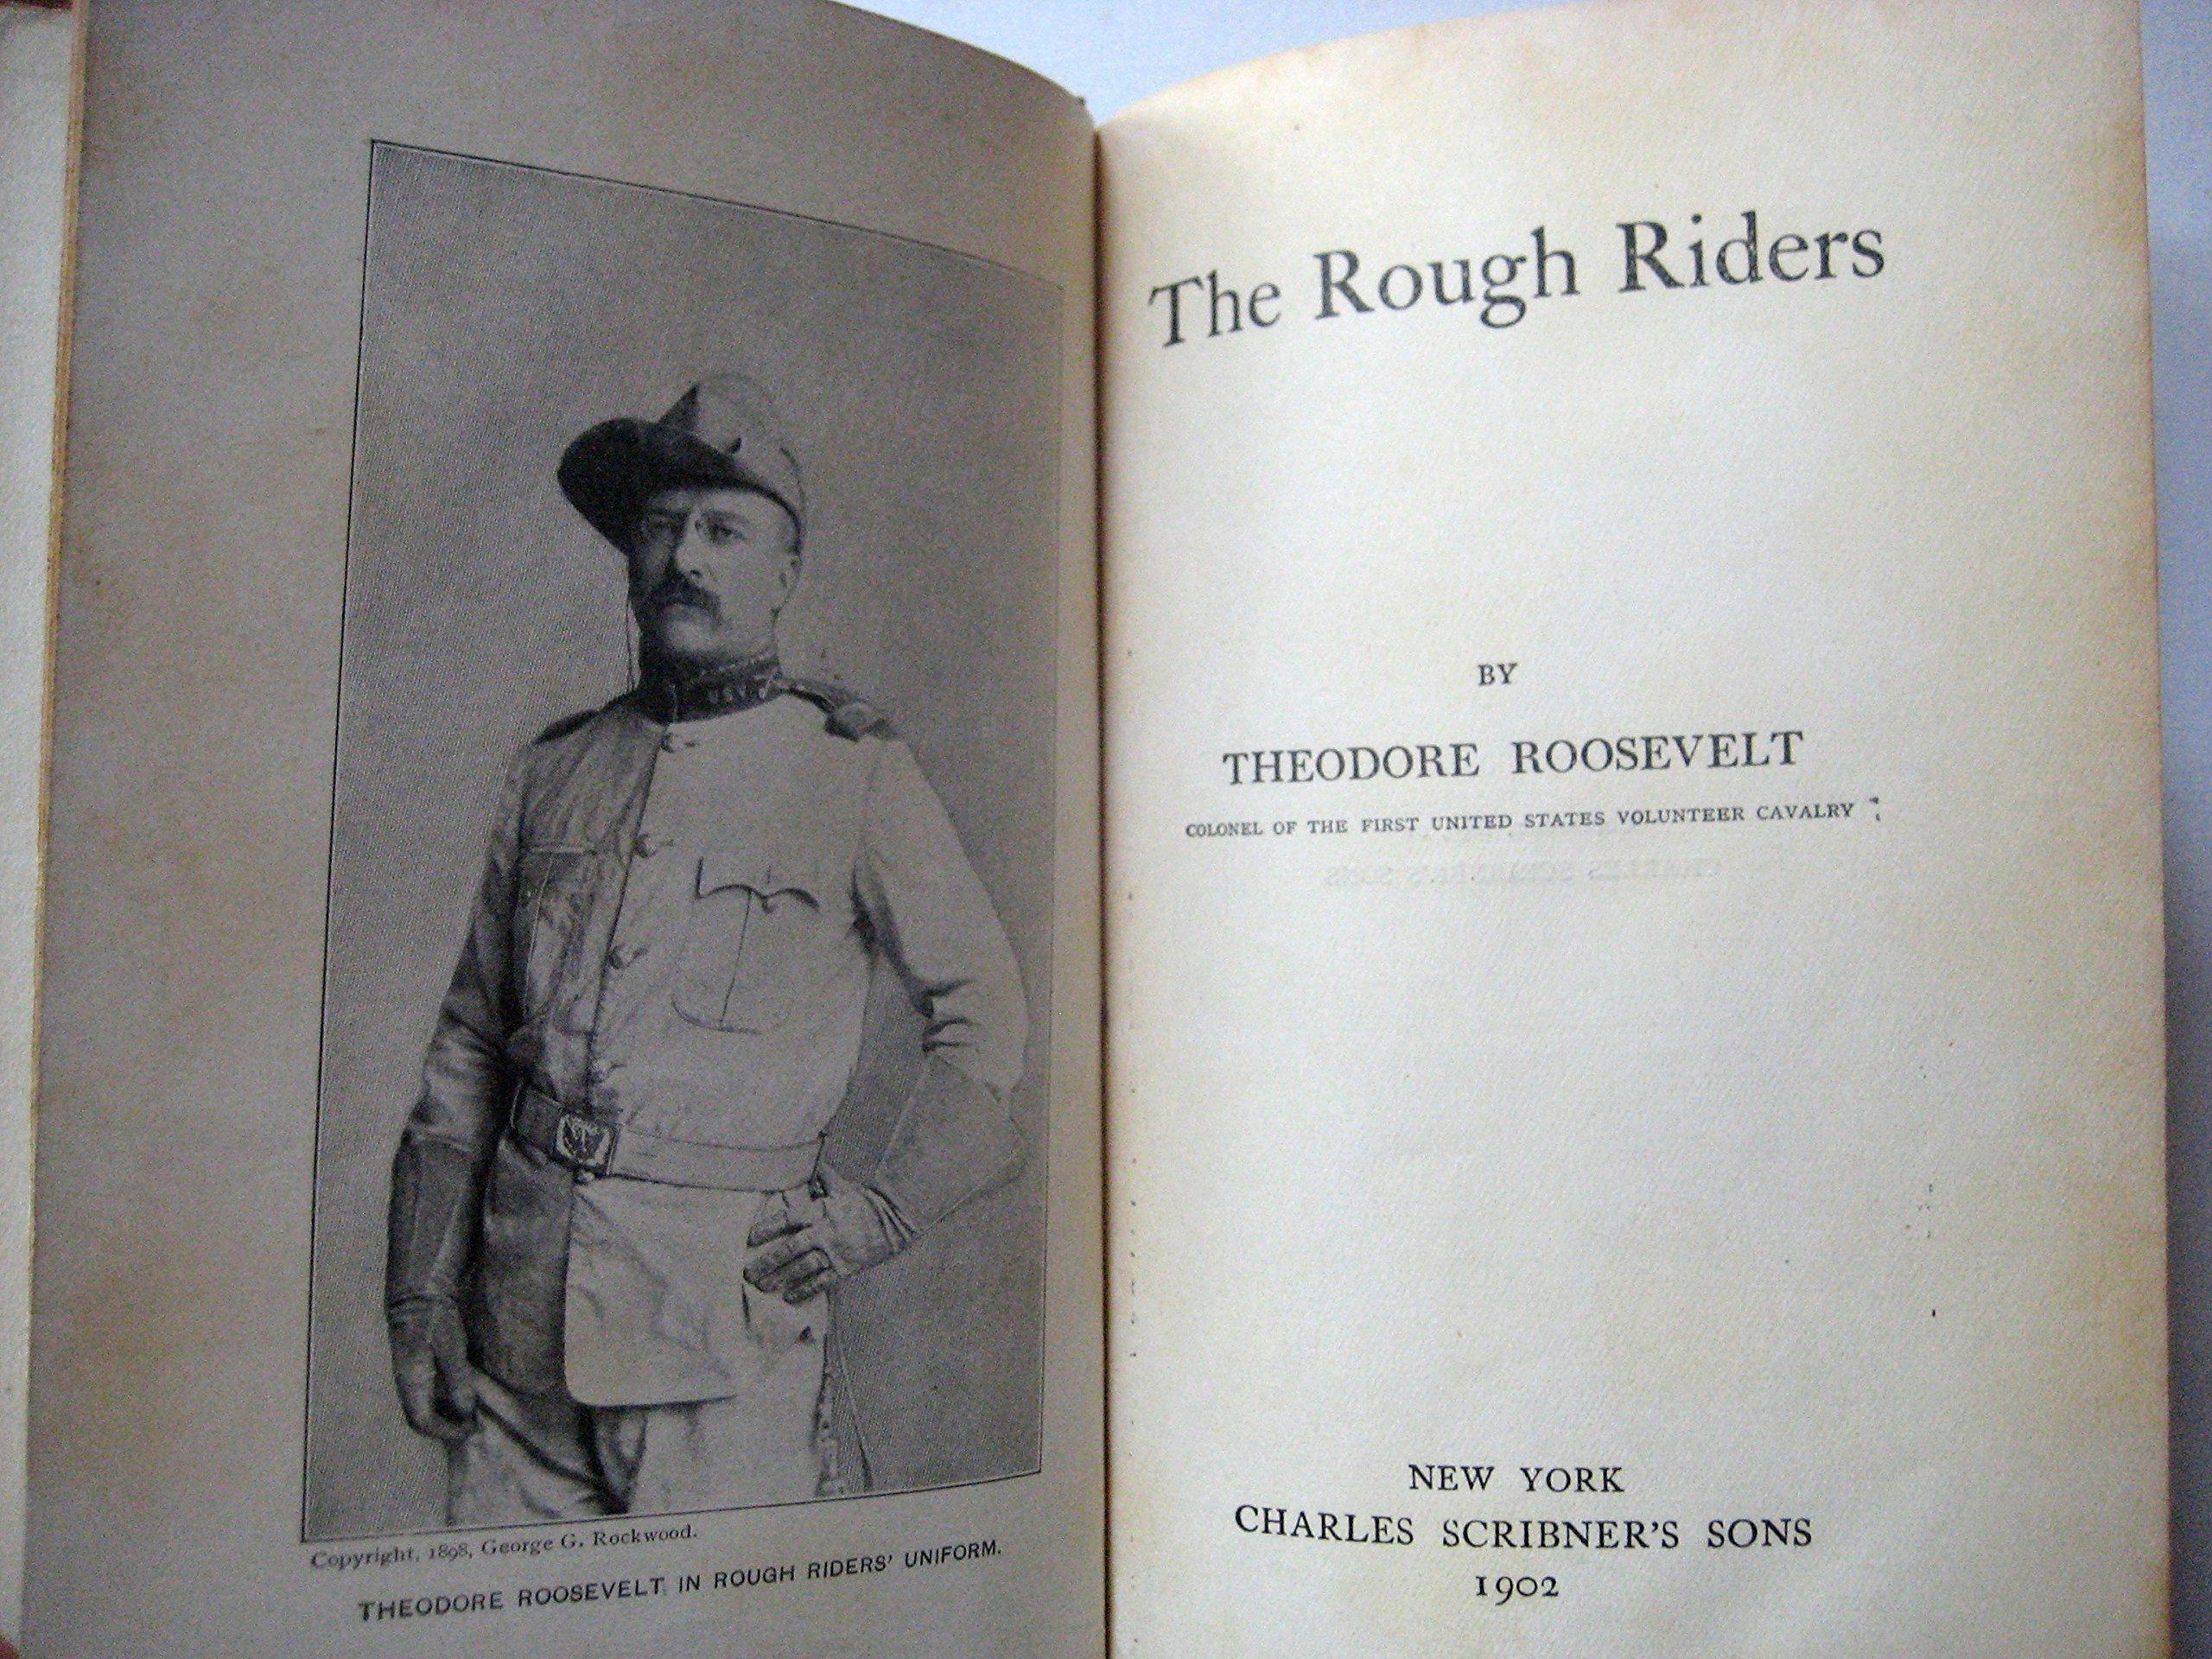 teddy roosevelt rough riders list of names